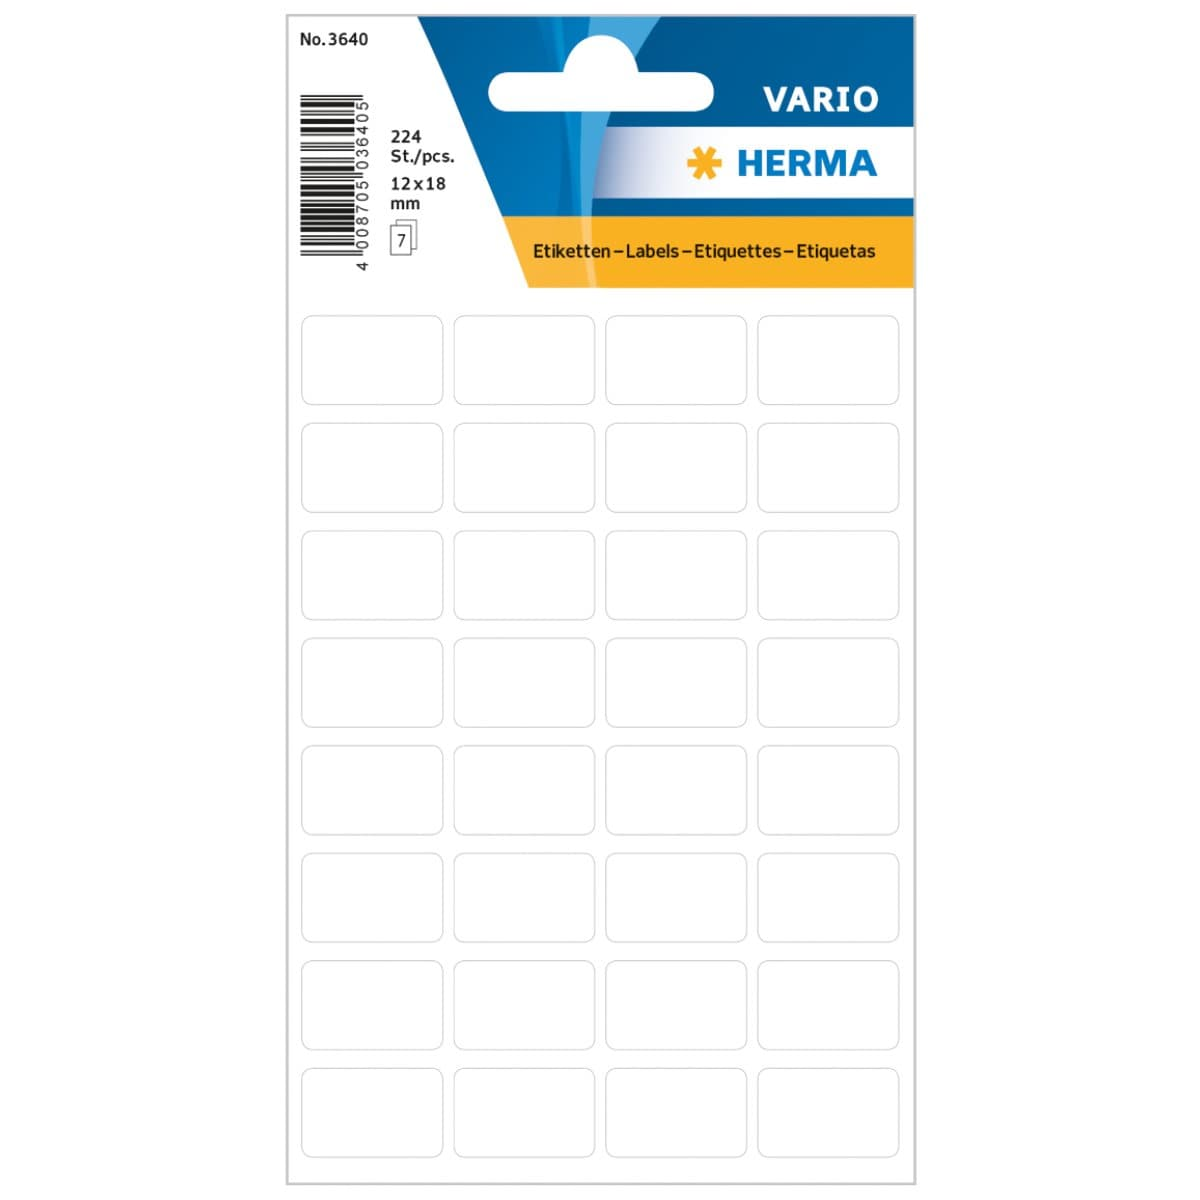 Herma Vario Sticker Labels, 12 x 19 mm, 224/pack, White